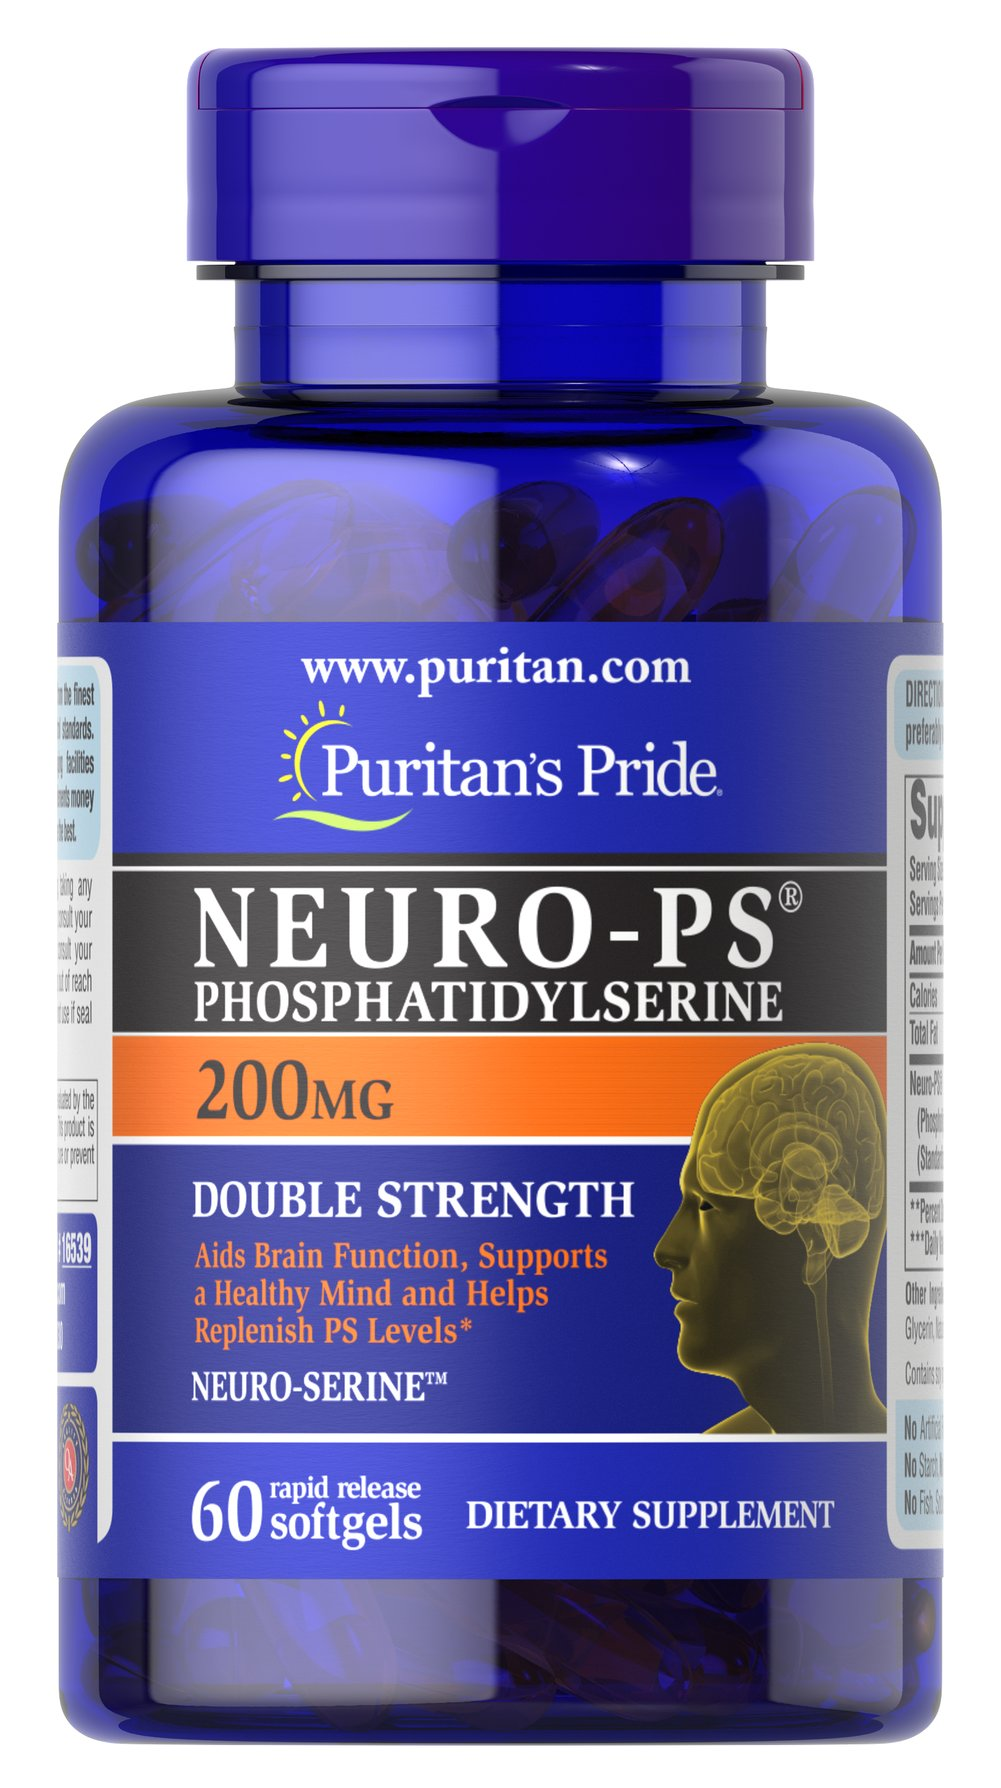 Neuro-PS (Phosphatidylserine) 200 mg <p>Phosphatidylserine (PS):</p> <p>Aids Brain Function**</p><p>Supports a Healthy Mind**</p><p>Helps Replenish PS levels**</p>   <p>Very limited and preliminary scientific research suggests that PS may reduce the risk of cognitive dysfunction in the elderly. The FDA concludes that there is  little scientific evidence supporting this claim.</p><p>Available in 100, 200 and 300 milligram potencies